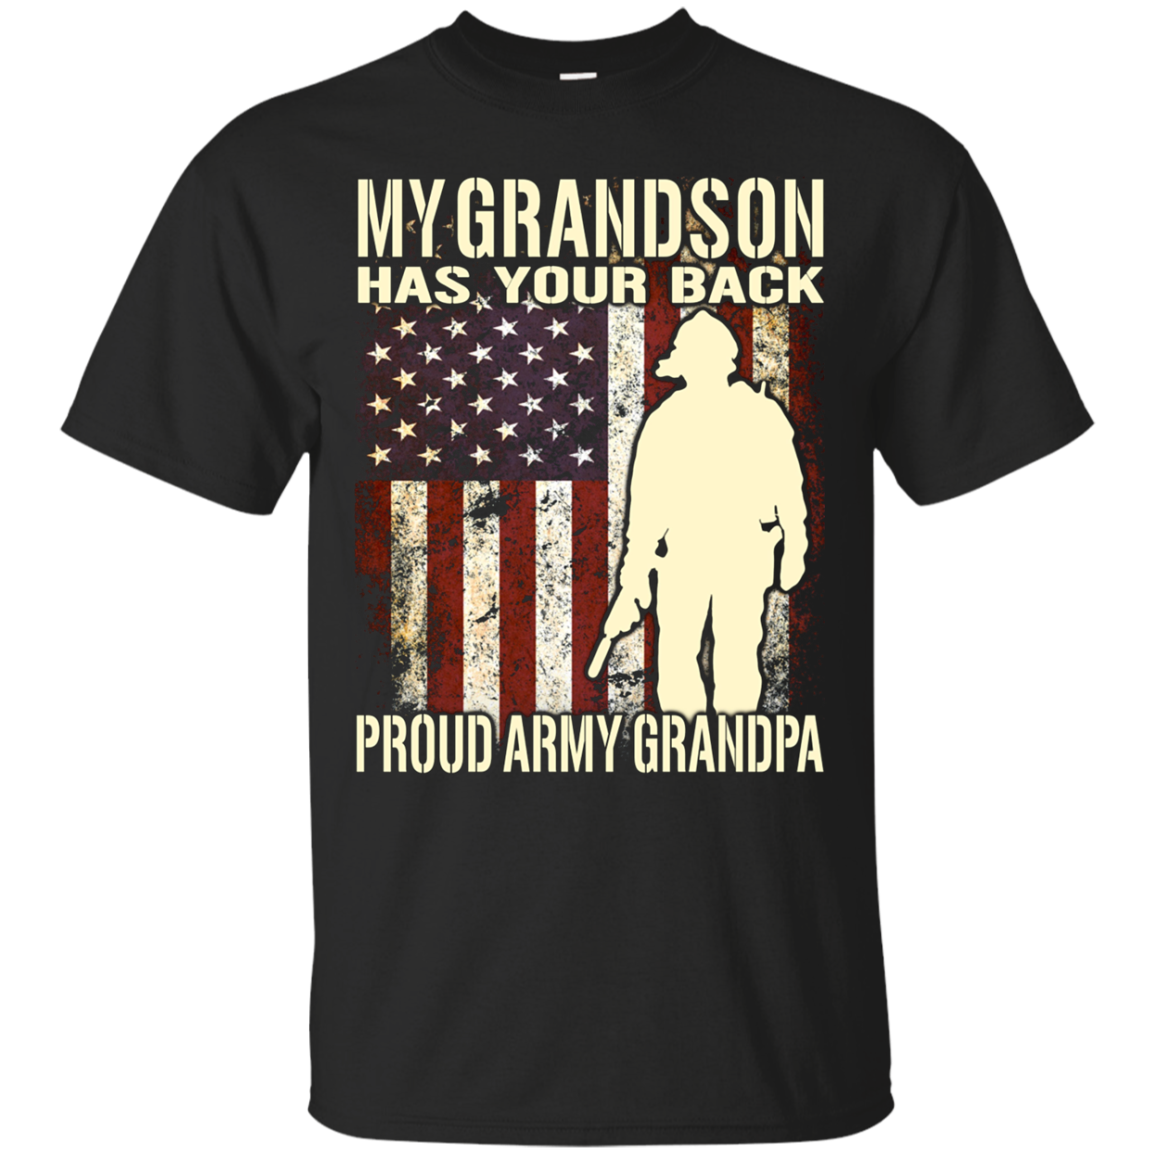 My Grandson Has Your Back Proud Army Grandpa T-Shirt